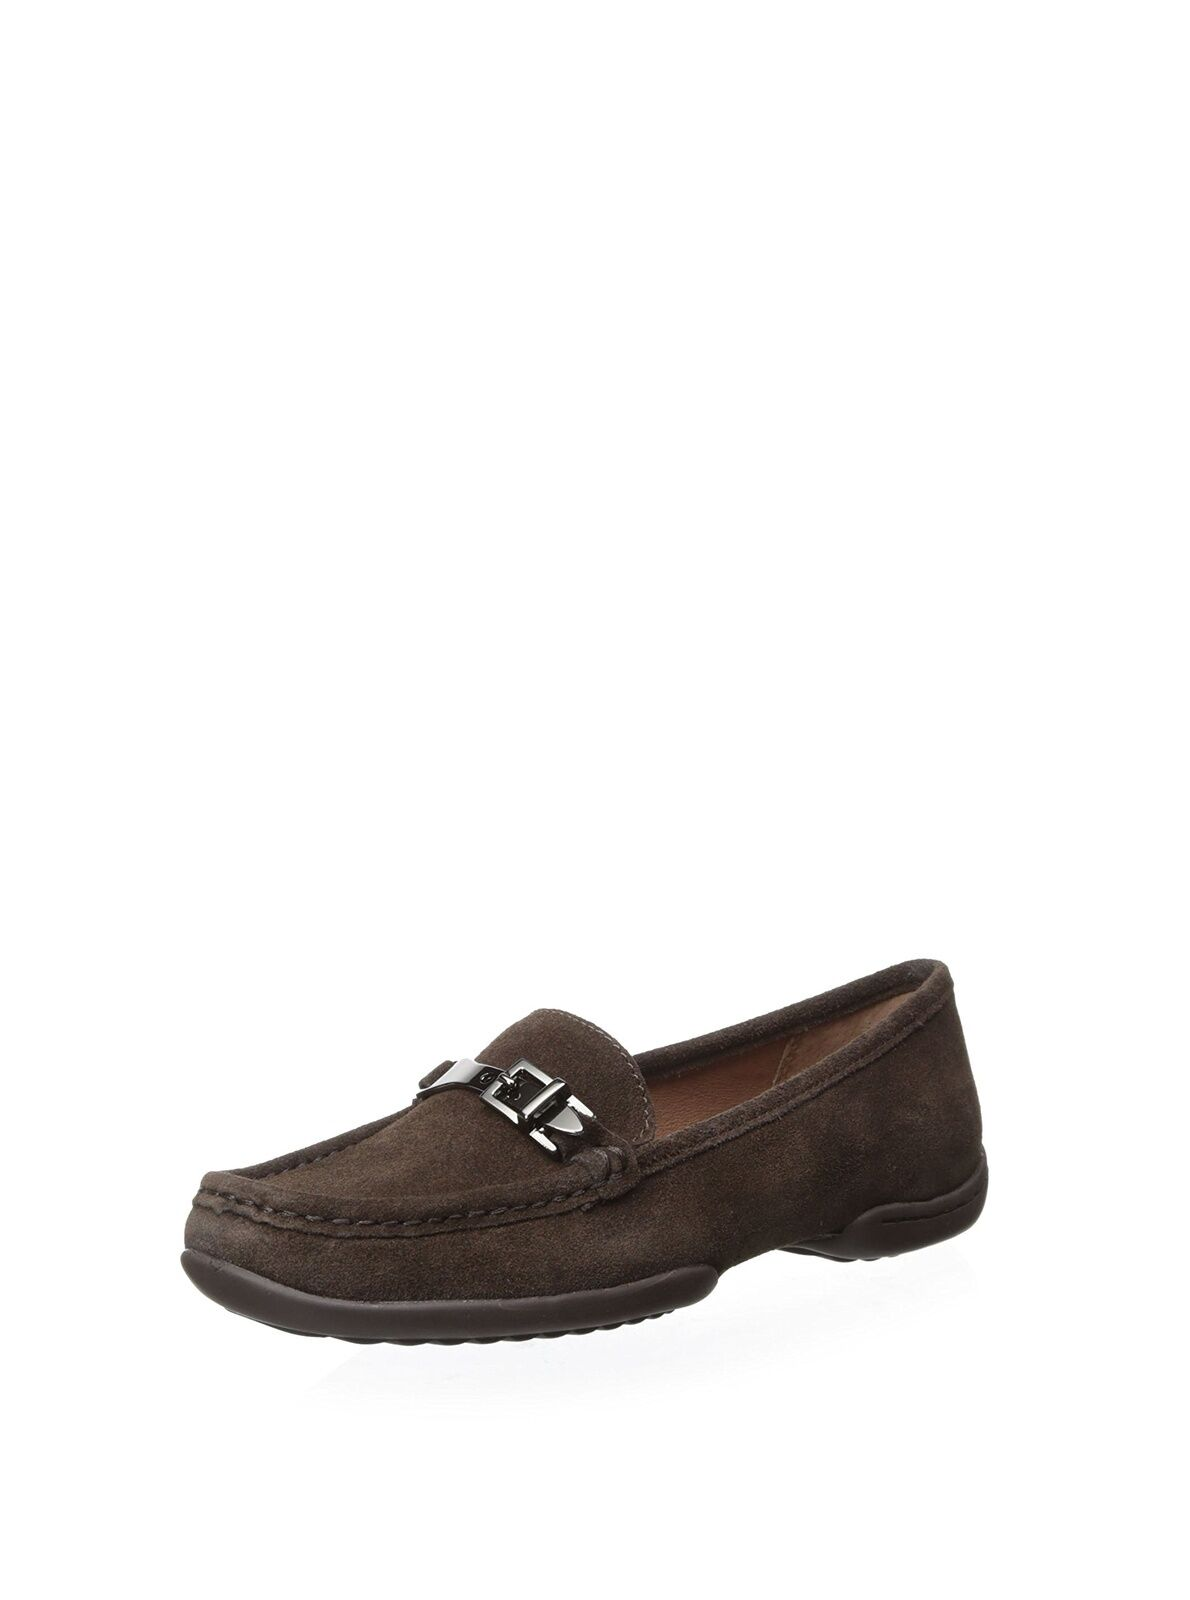 DONALD J PLINER VUTRA LOAFERS, Taille 10, BRAND NEW IN BOX,  225 USD